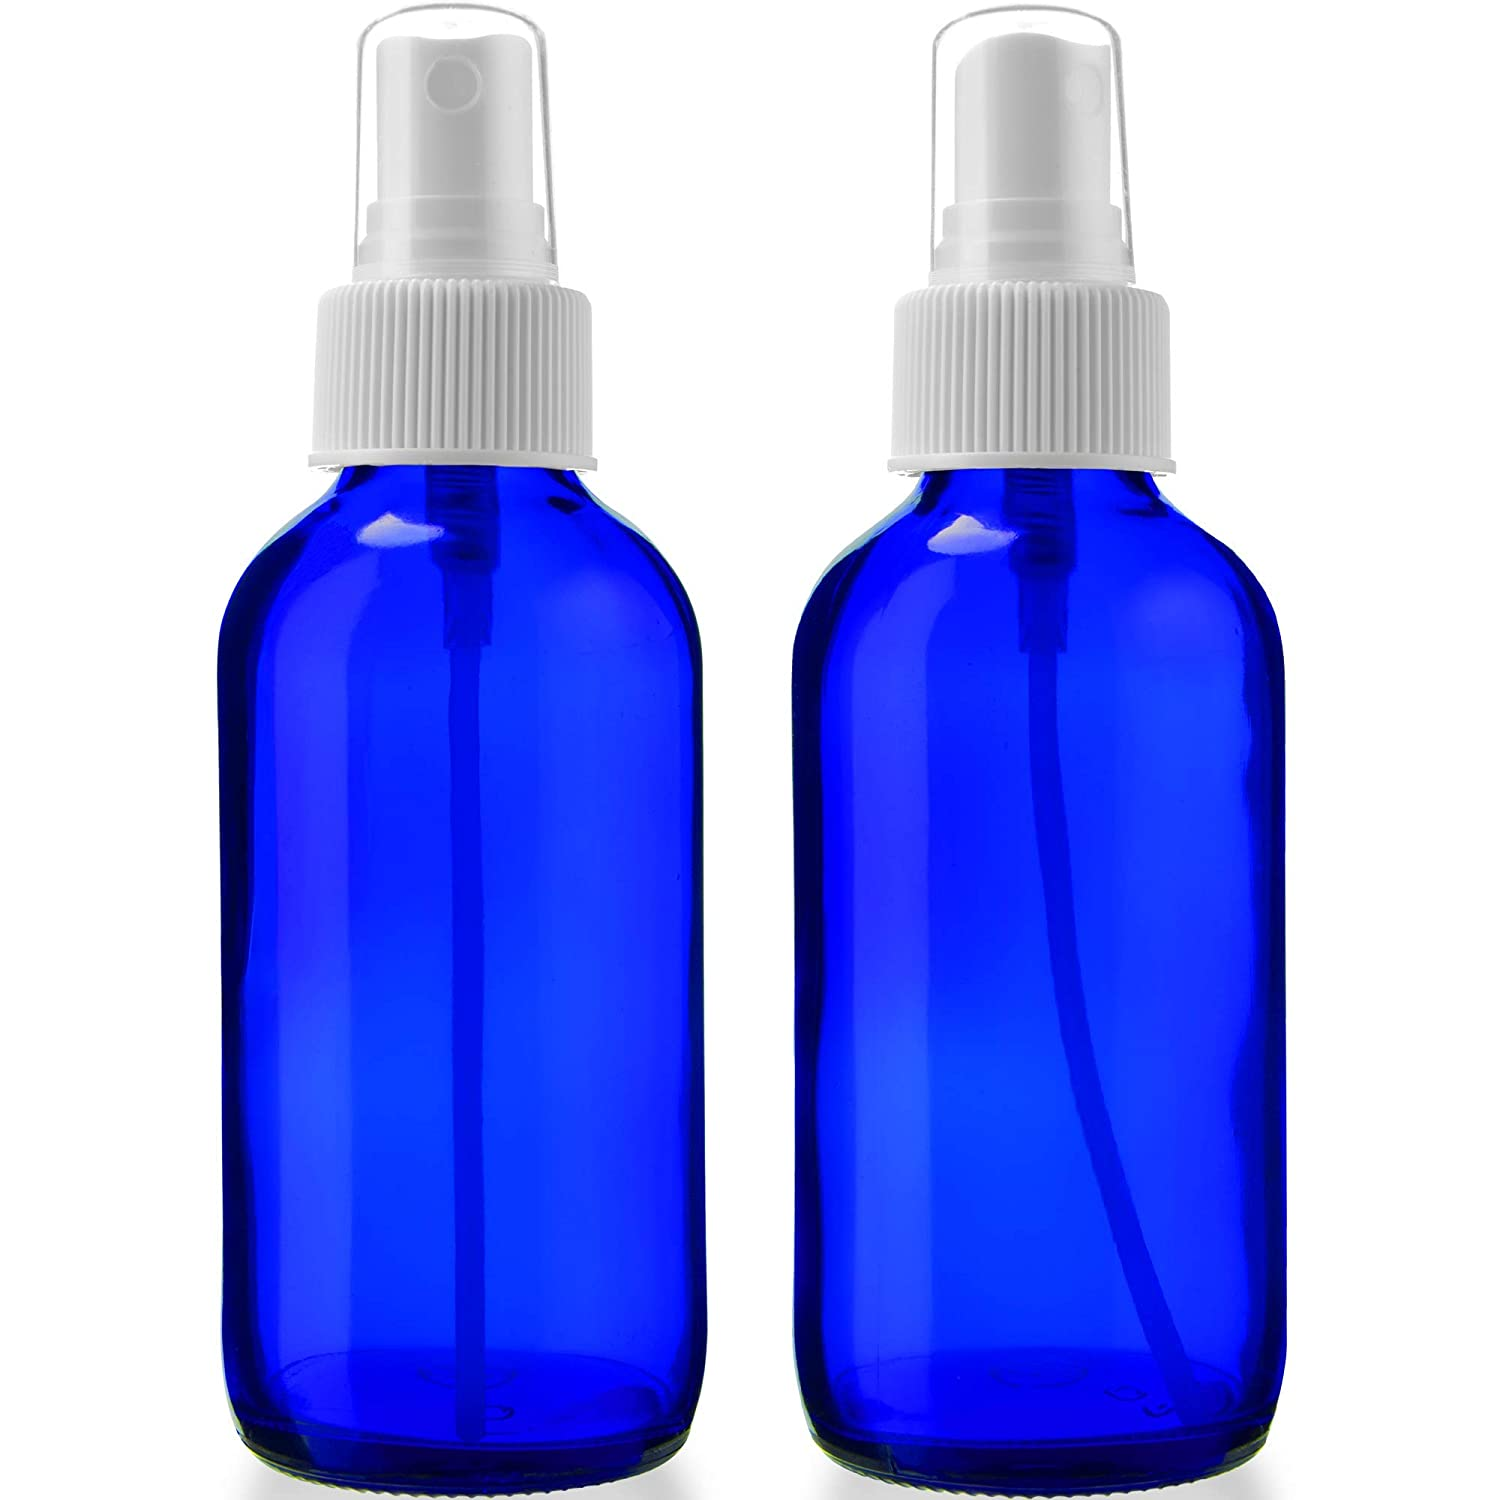 2 Empty Blue Glass Spray Bottles - 4oz Refillable Bottle is Great for Essential Oils, Organic Beauty Solutions, Homemade Cleaning and Aromatherapy - Small Portable Misters with Caps & Labels - 2 Pack